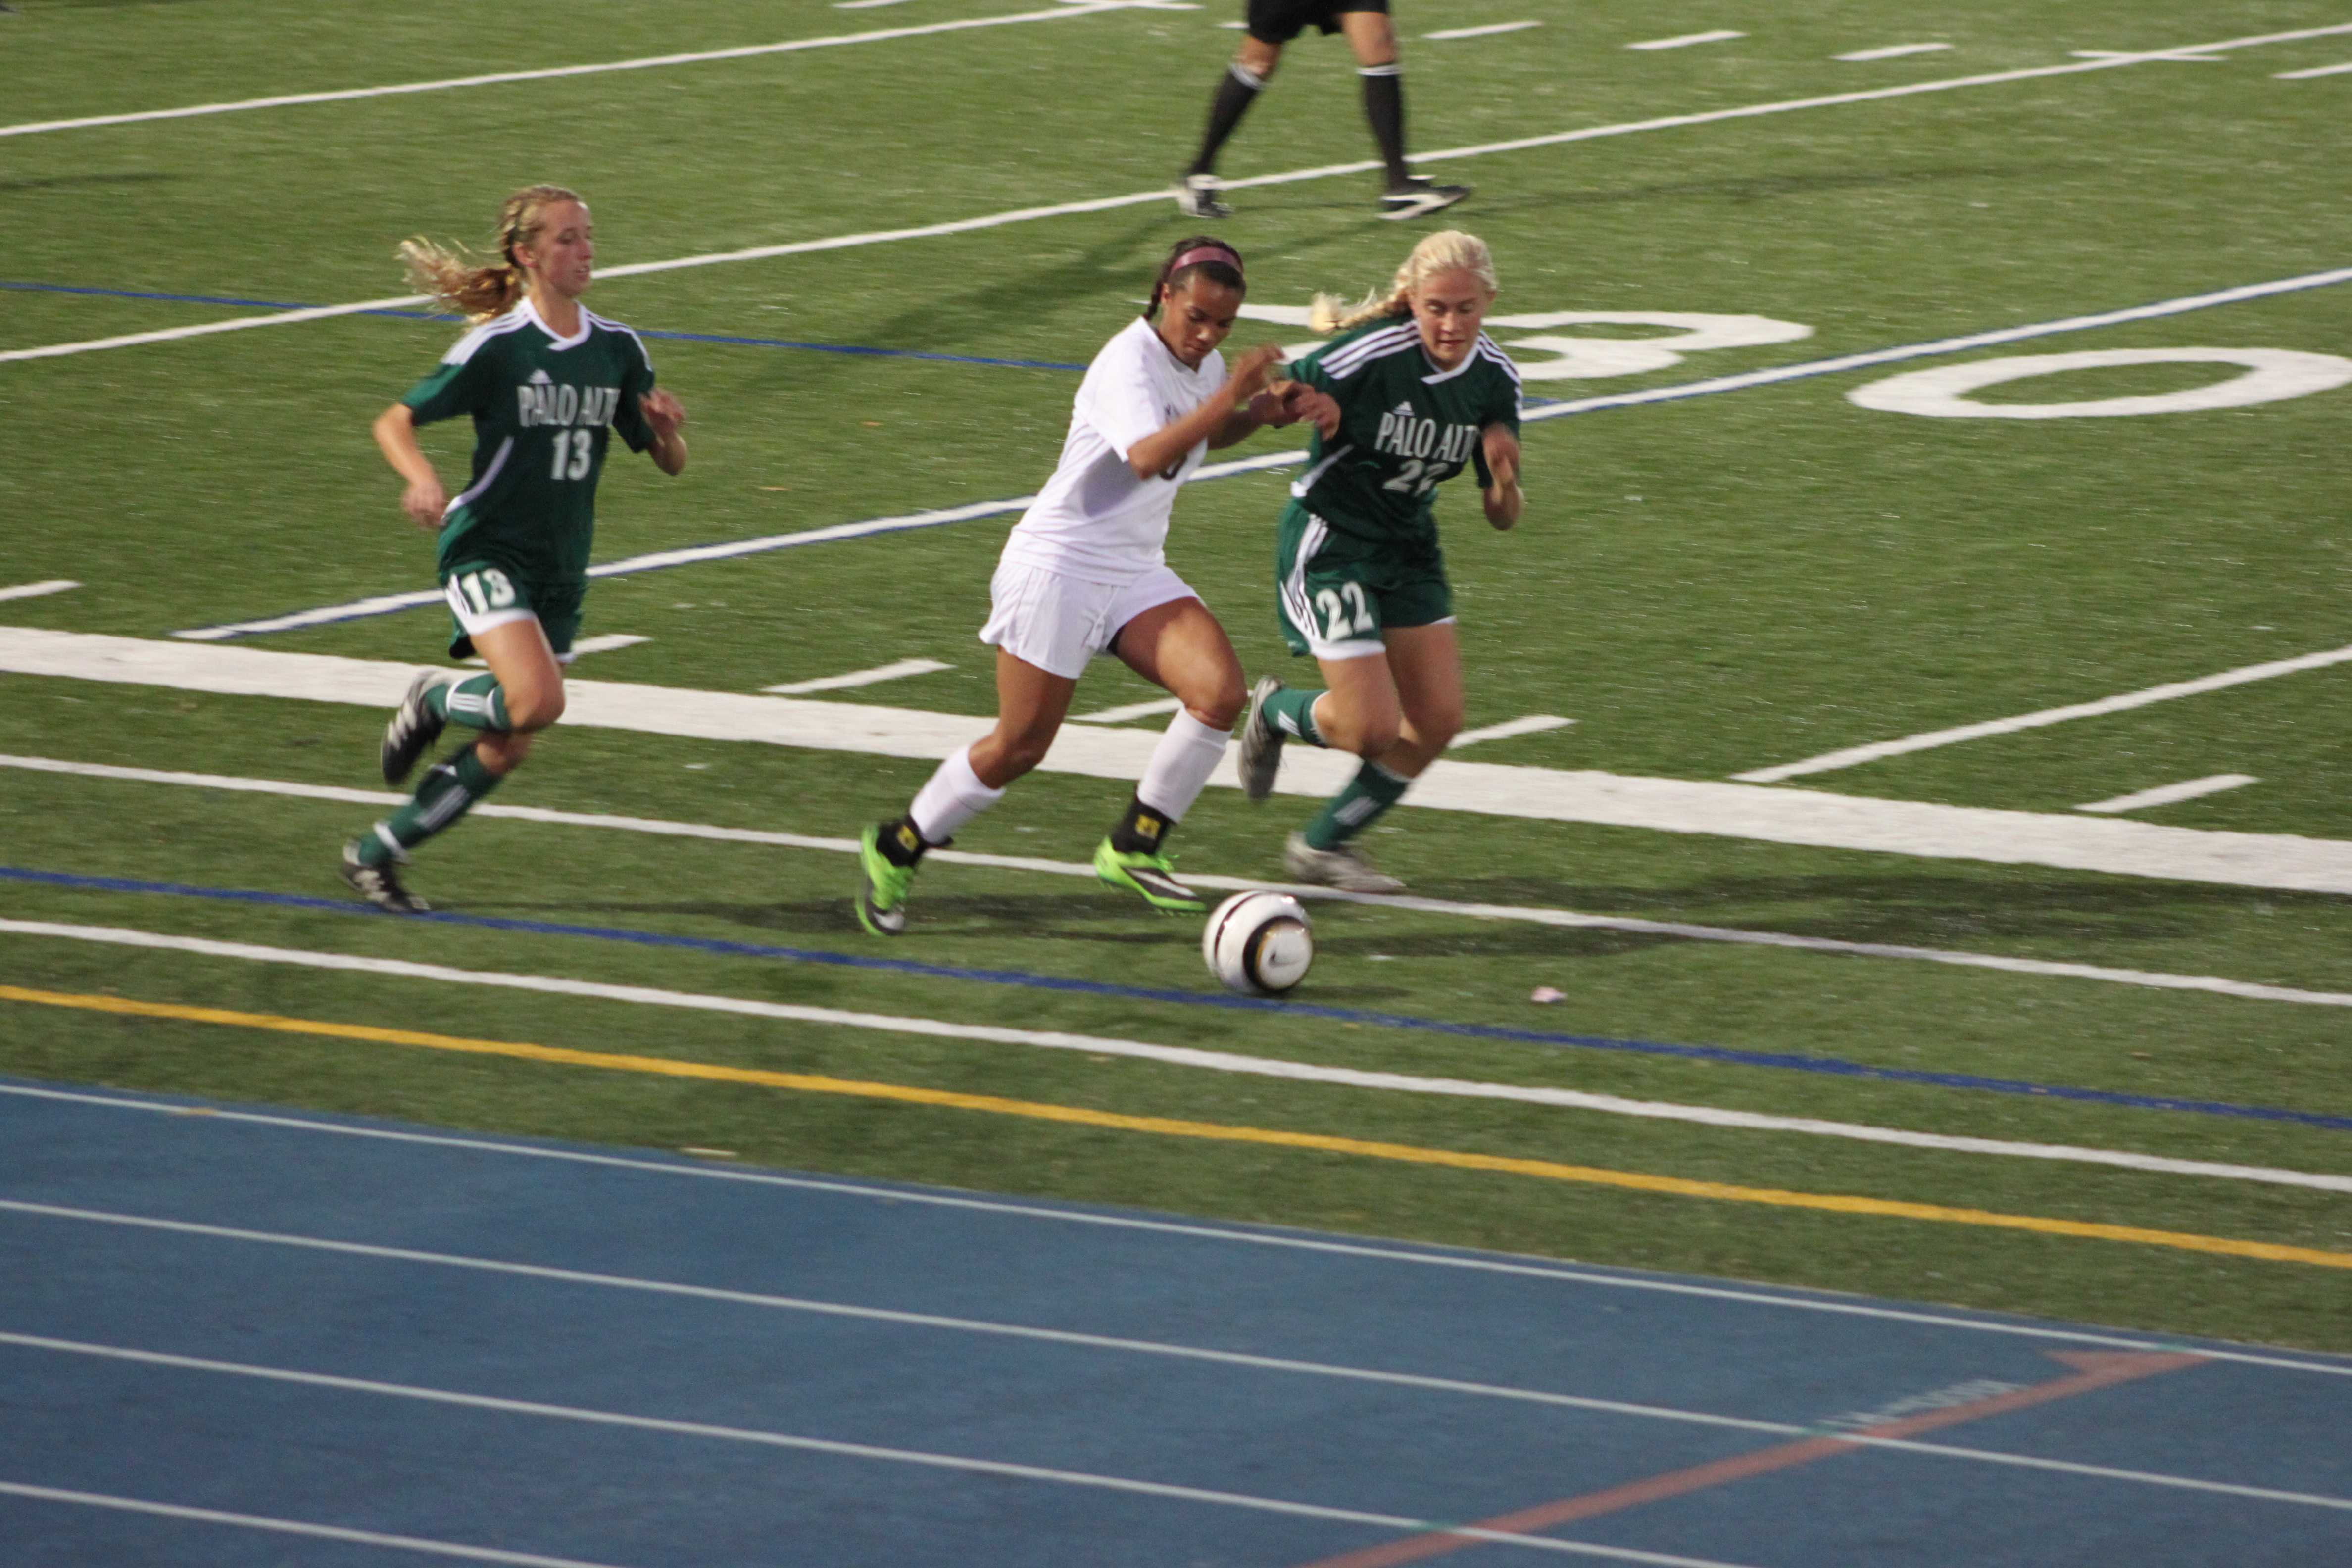 Senior Simone McCarthy takes on a defender.